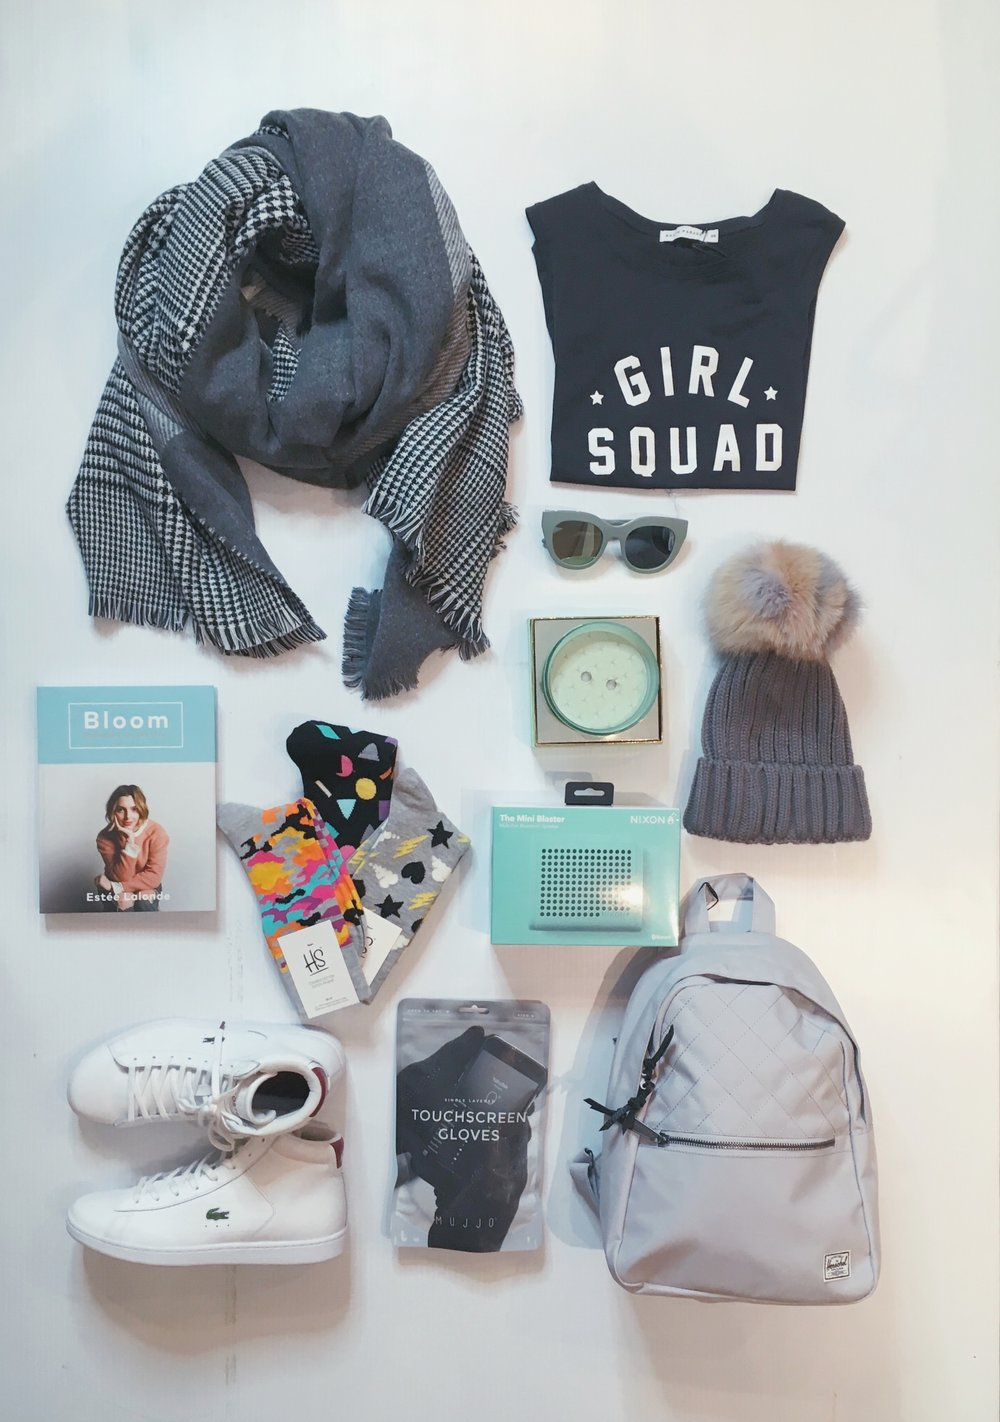 When they probably own everything but it's time for an upgrade... Featured: (left to right) Fraanklin Reversible Scarf $105 | Girl Squad Tee $66 | Le Specs $110 | Bloom Book by Estee Lalonde $28 | Happy Socks $15 | Nixon Mini Blaster $110 | Odeme Candle $69 | Multicoloured Fur Pom Toque $125 | Lacoste Carnaby Sneakers $195| Mujjo Tech Gloves $49 | Herschel Town Backpack $64